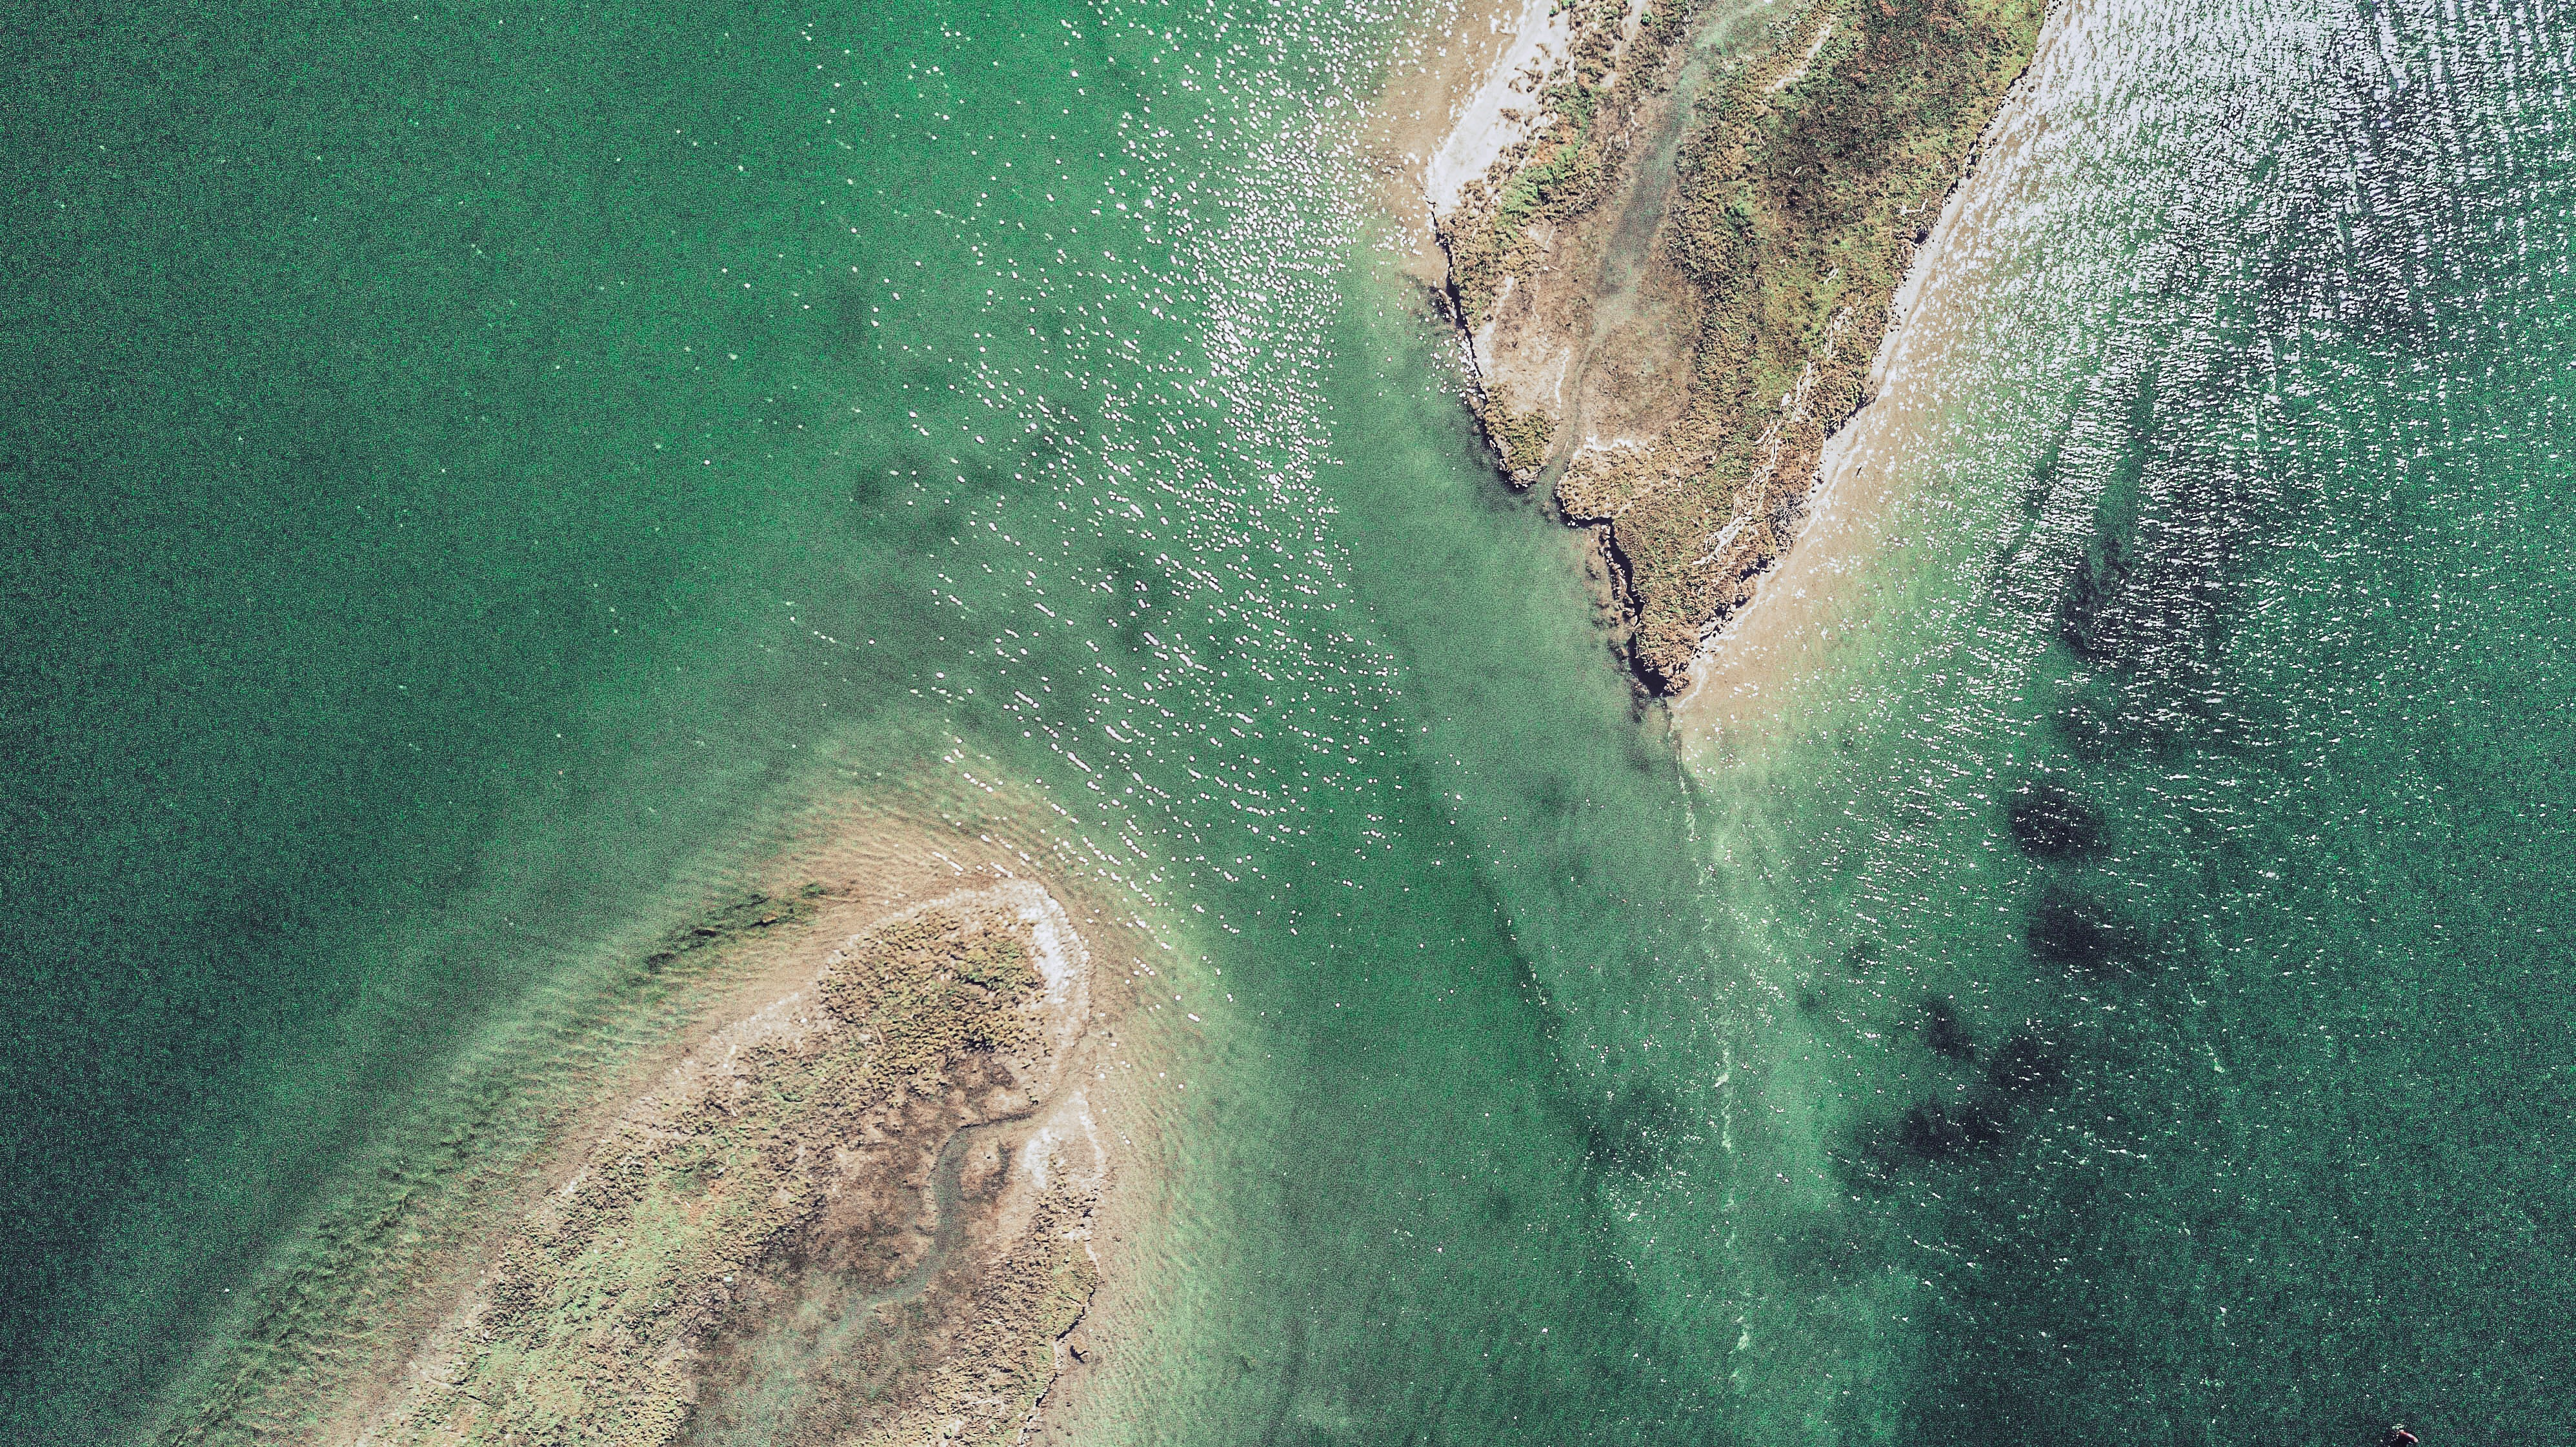 Drone view of the passage between two sand banks